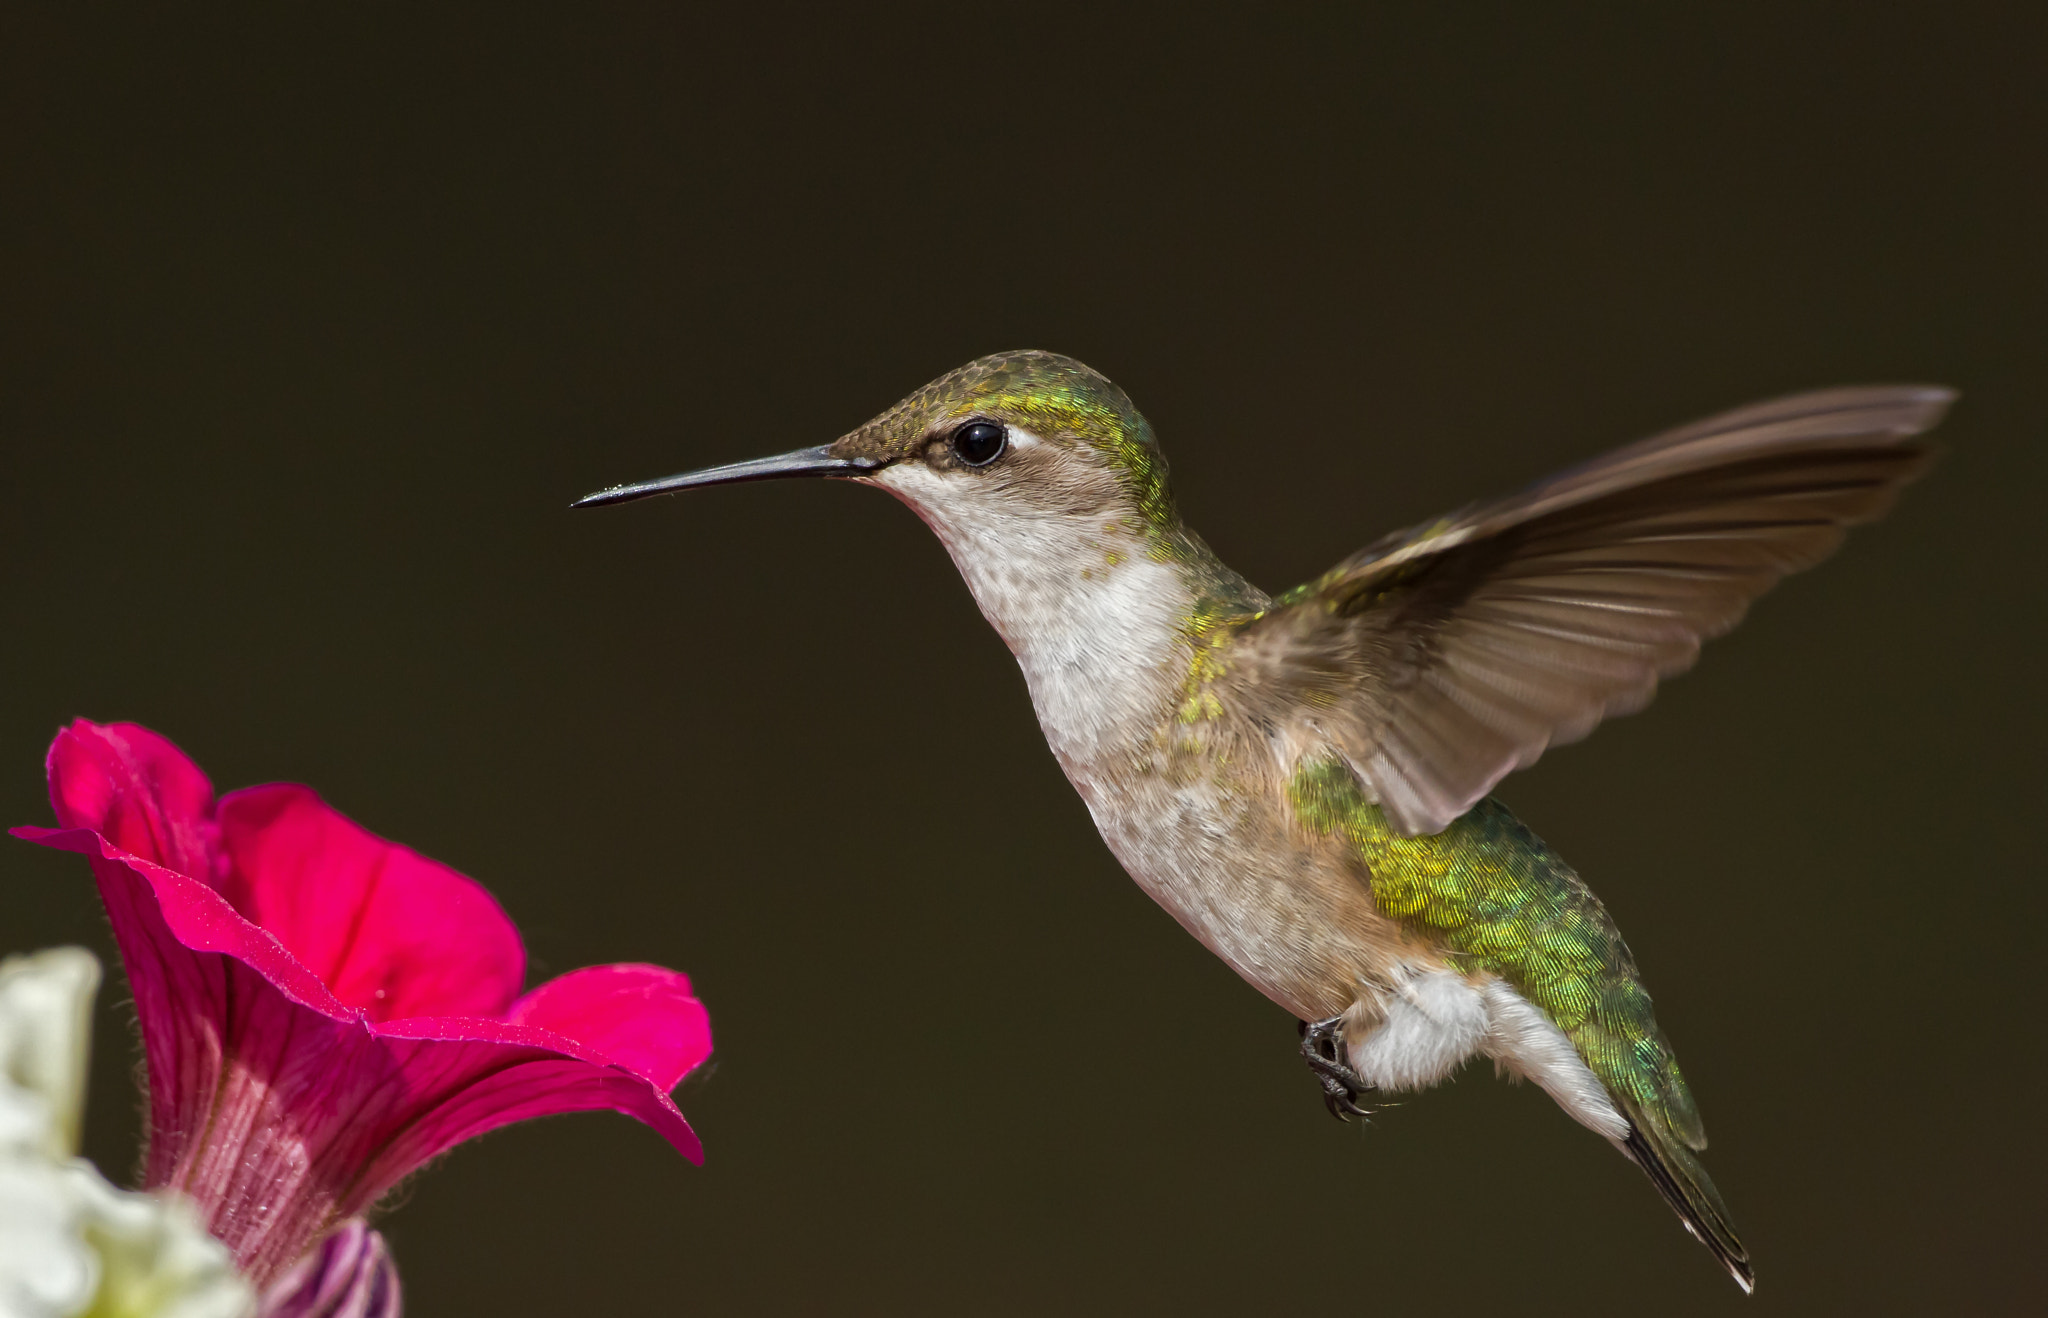 Photograph Hummingbird by Daniel Gelinas on 500px